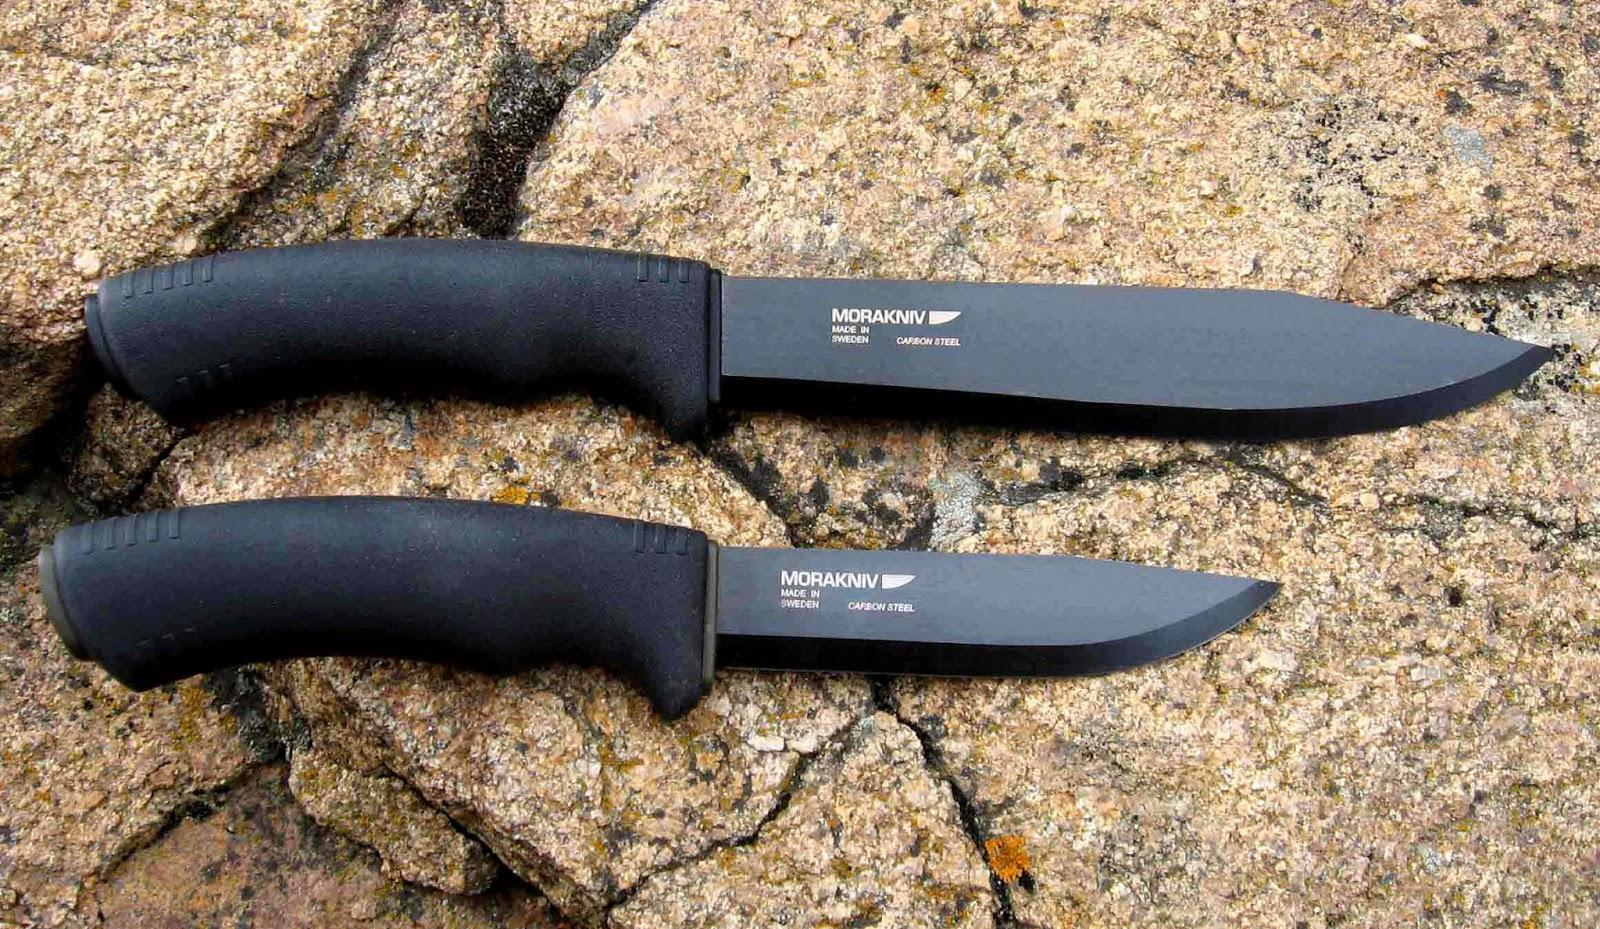 Morakniv Bushcraft Carbon Black Tactical Knife Review